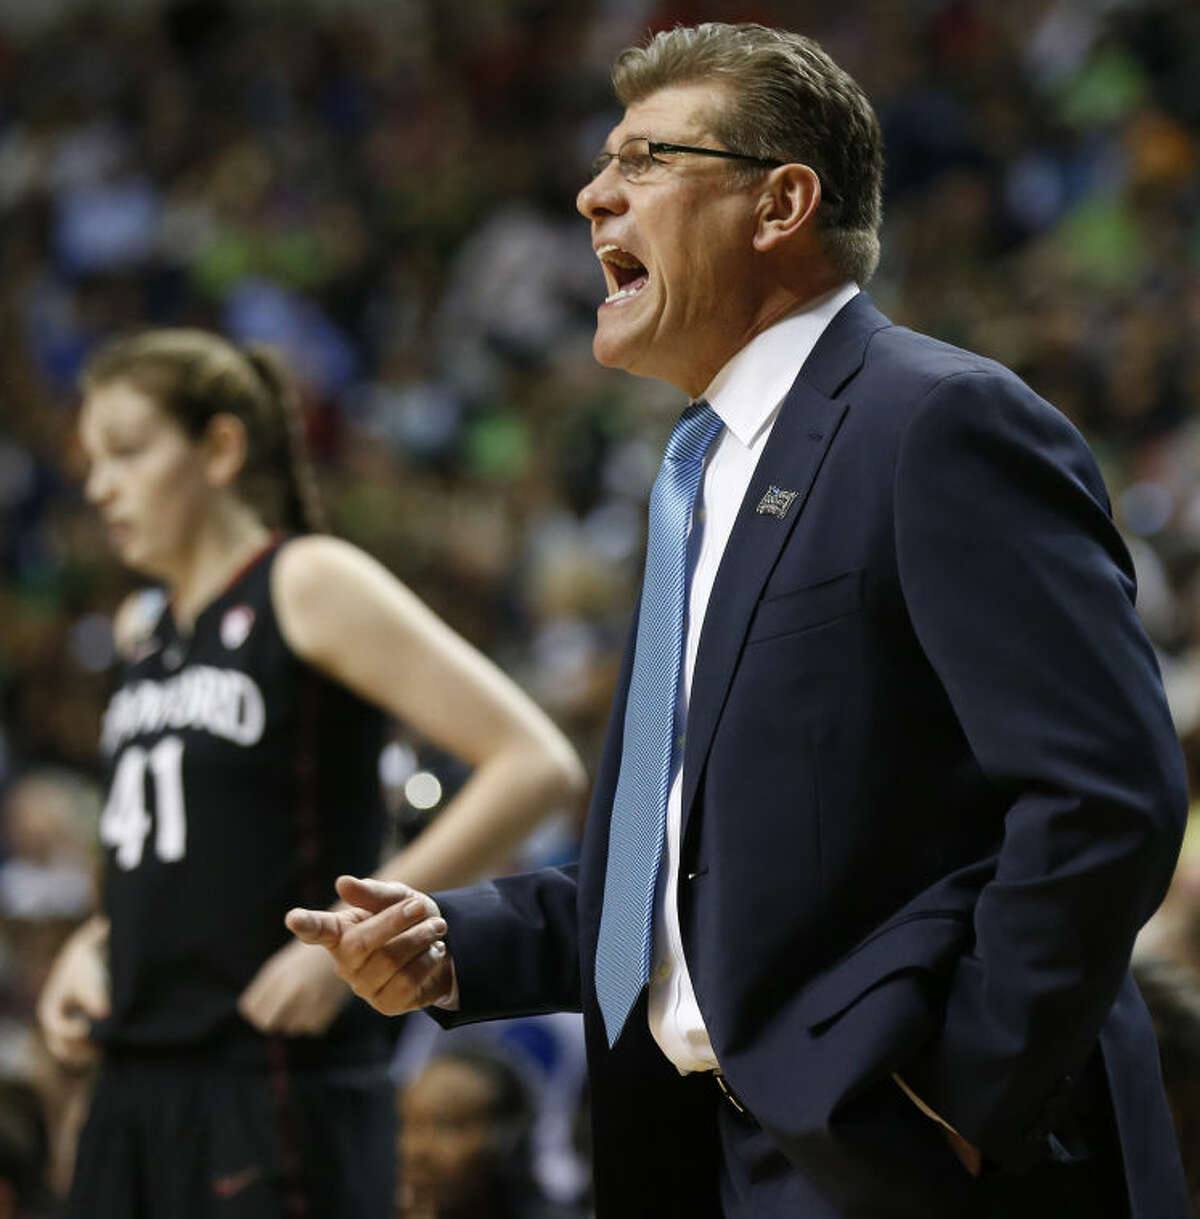 Connecticut head coach Geno Auriemma speaks to players against Stanford during the first half of the semifinal game in the Final Four of the NCAA women's college basketball tournament, Sunday, April 6, 2014, in Nashville, Tenn. (AP Photo/John Bazemore)